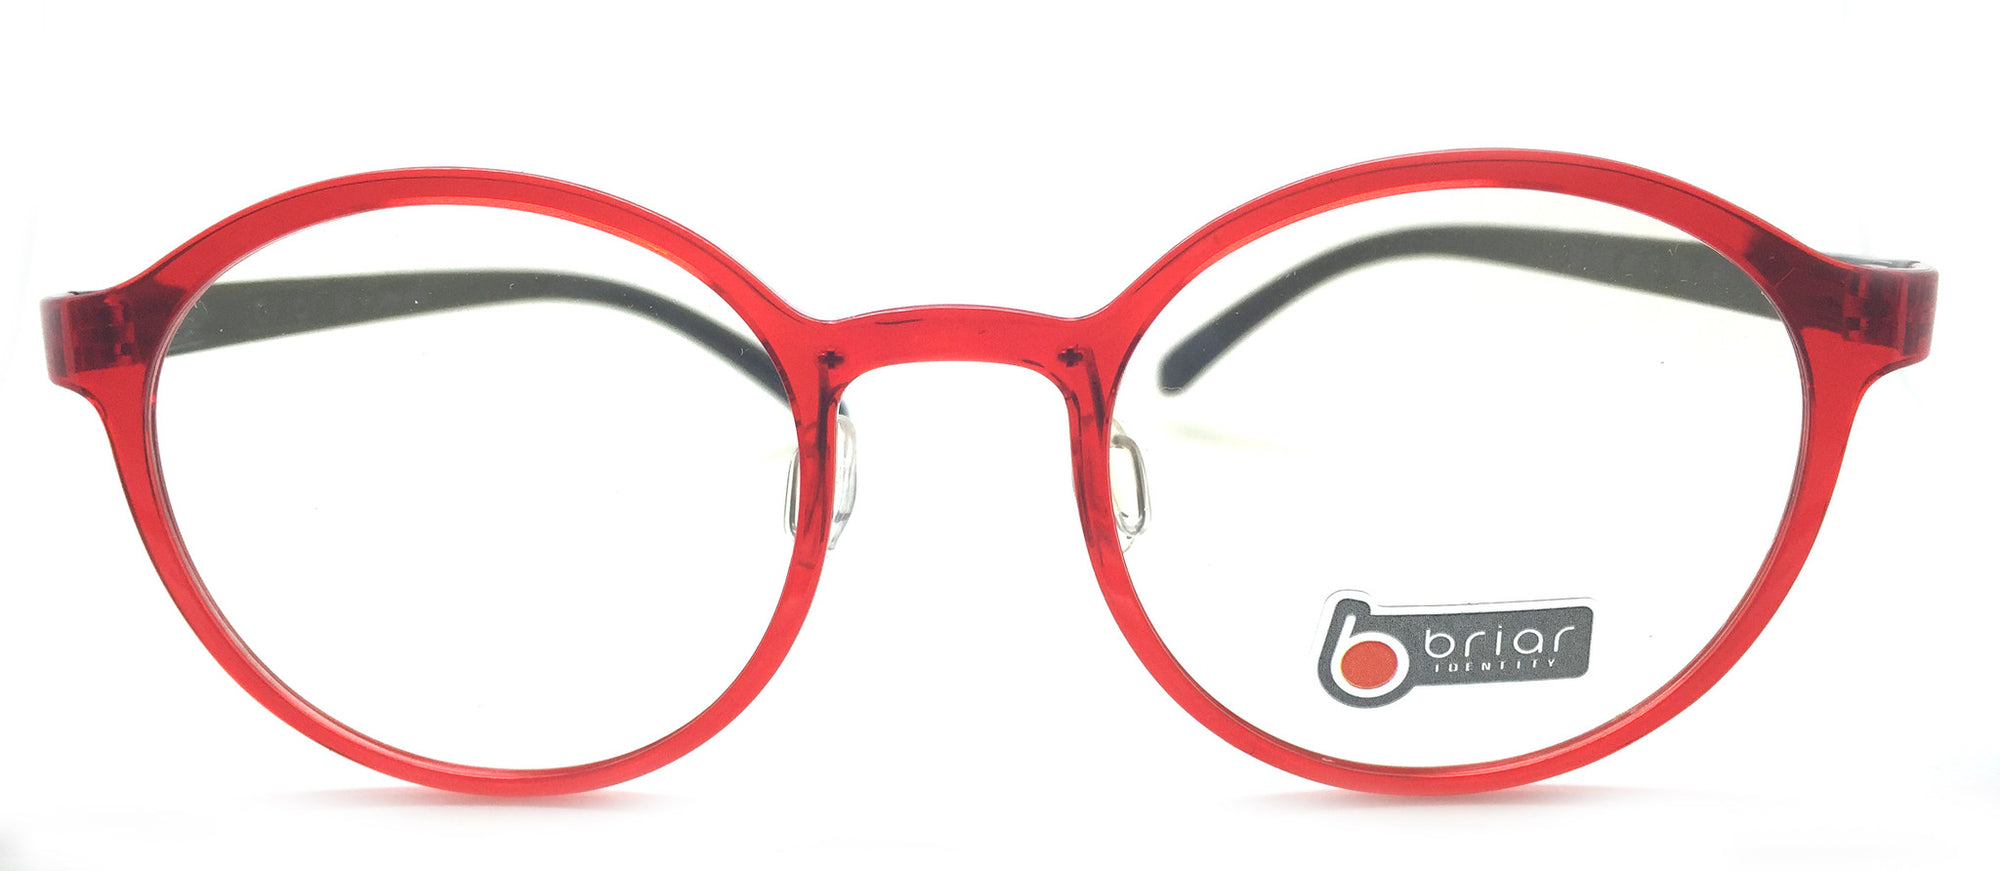 Briar Eyeglasses Prescription Frame Super Light, Flexible,  BR 303 C10